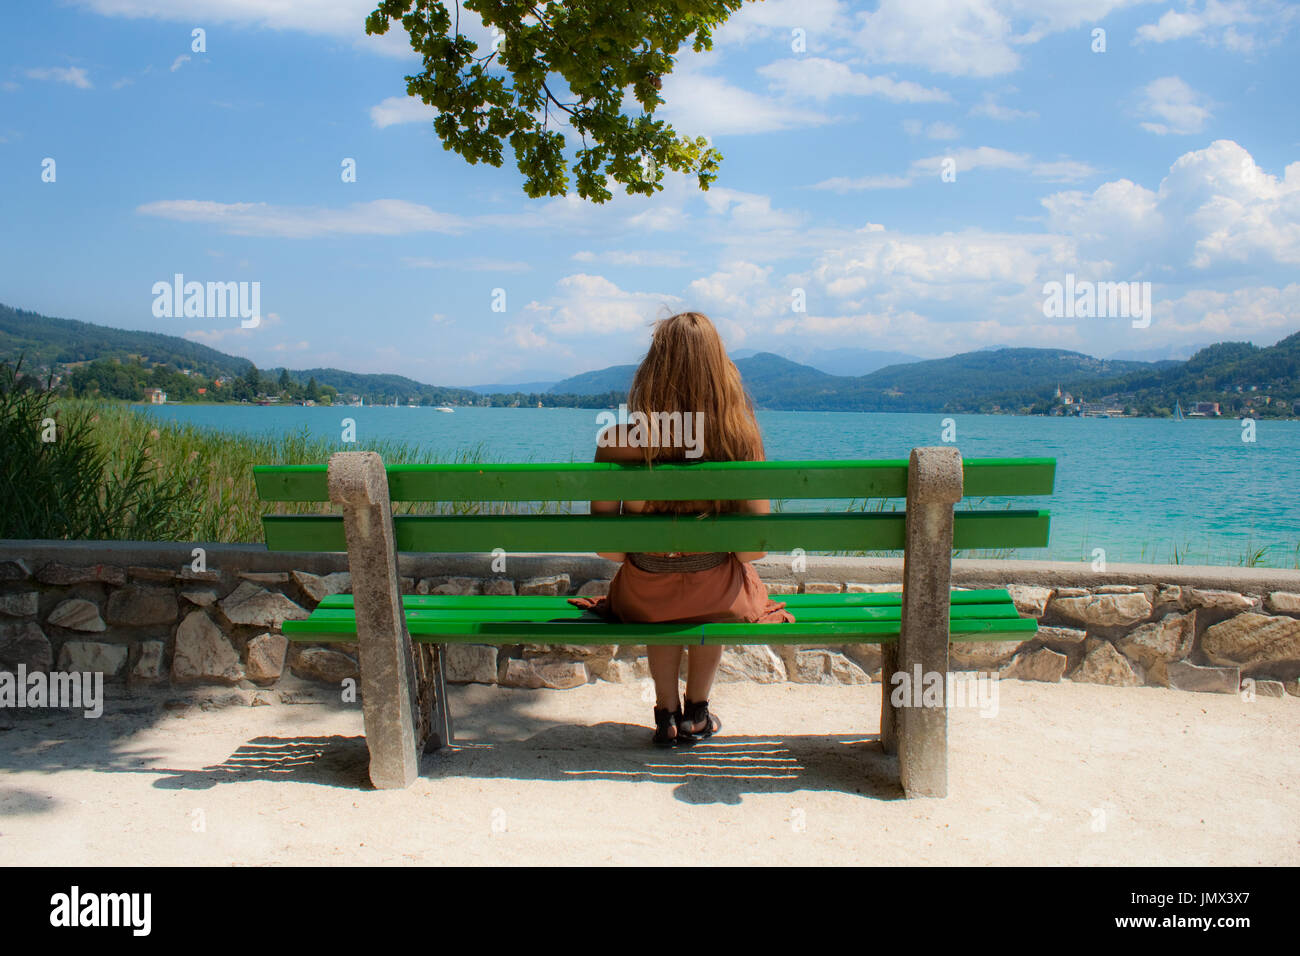 Lake W Rthersee Stock Photos Lake W Rthersee Stock Images Alamy # Un Muble De Tele En Lake